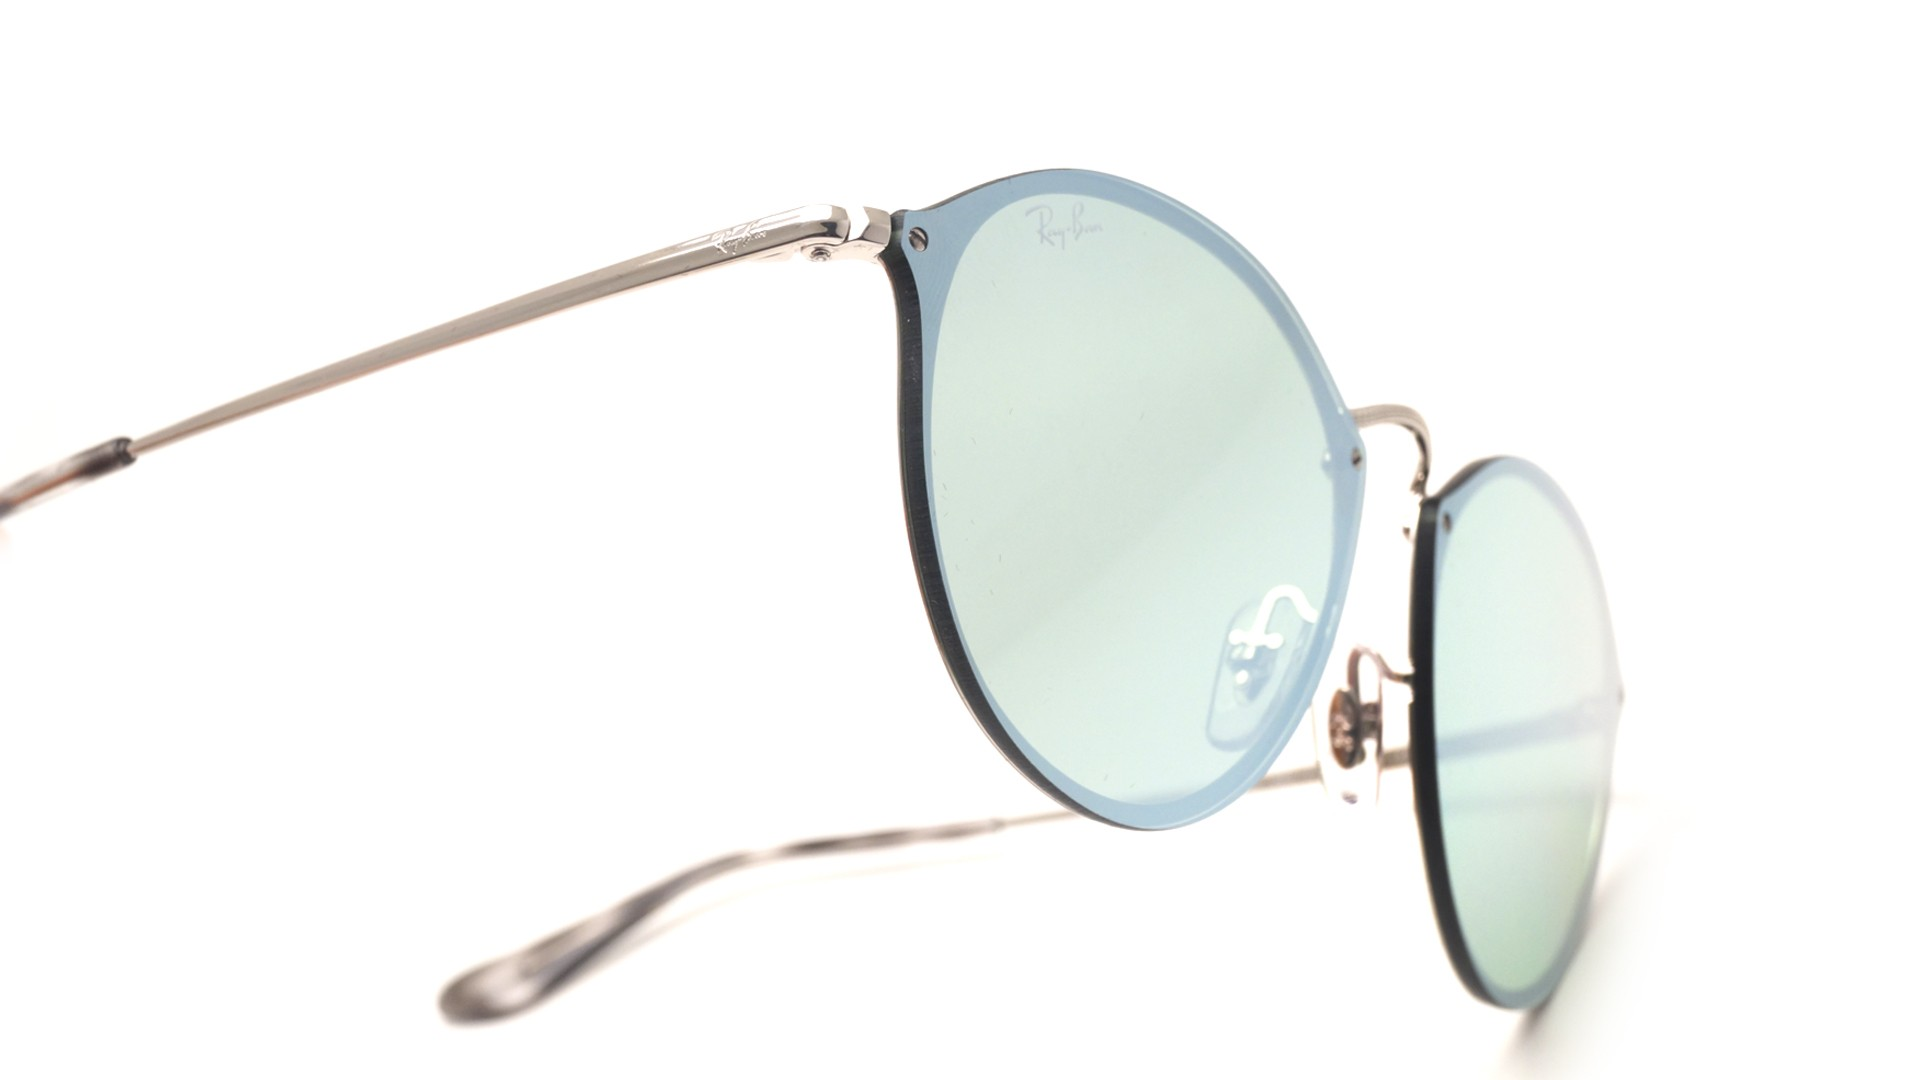 Sunglasses Ray-Ban Round Blaze Silver RB3574N 003 30 59-14 Large Mirror 5784e3e56d